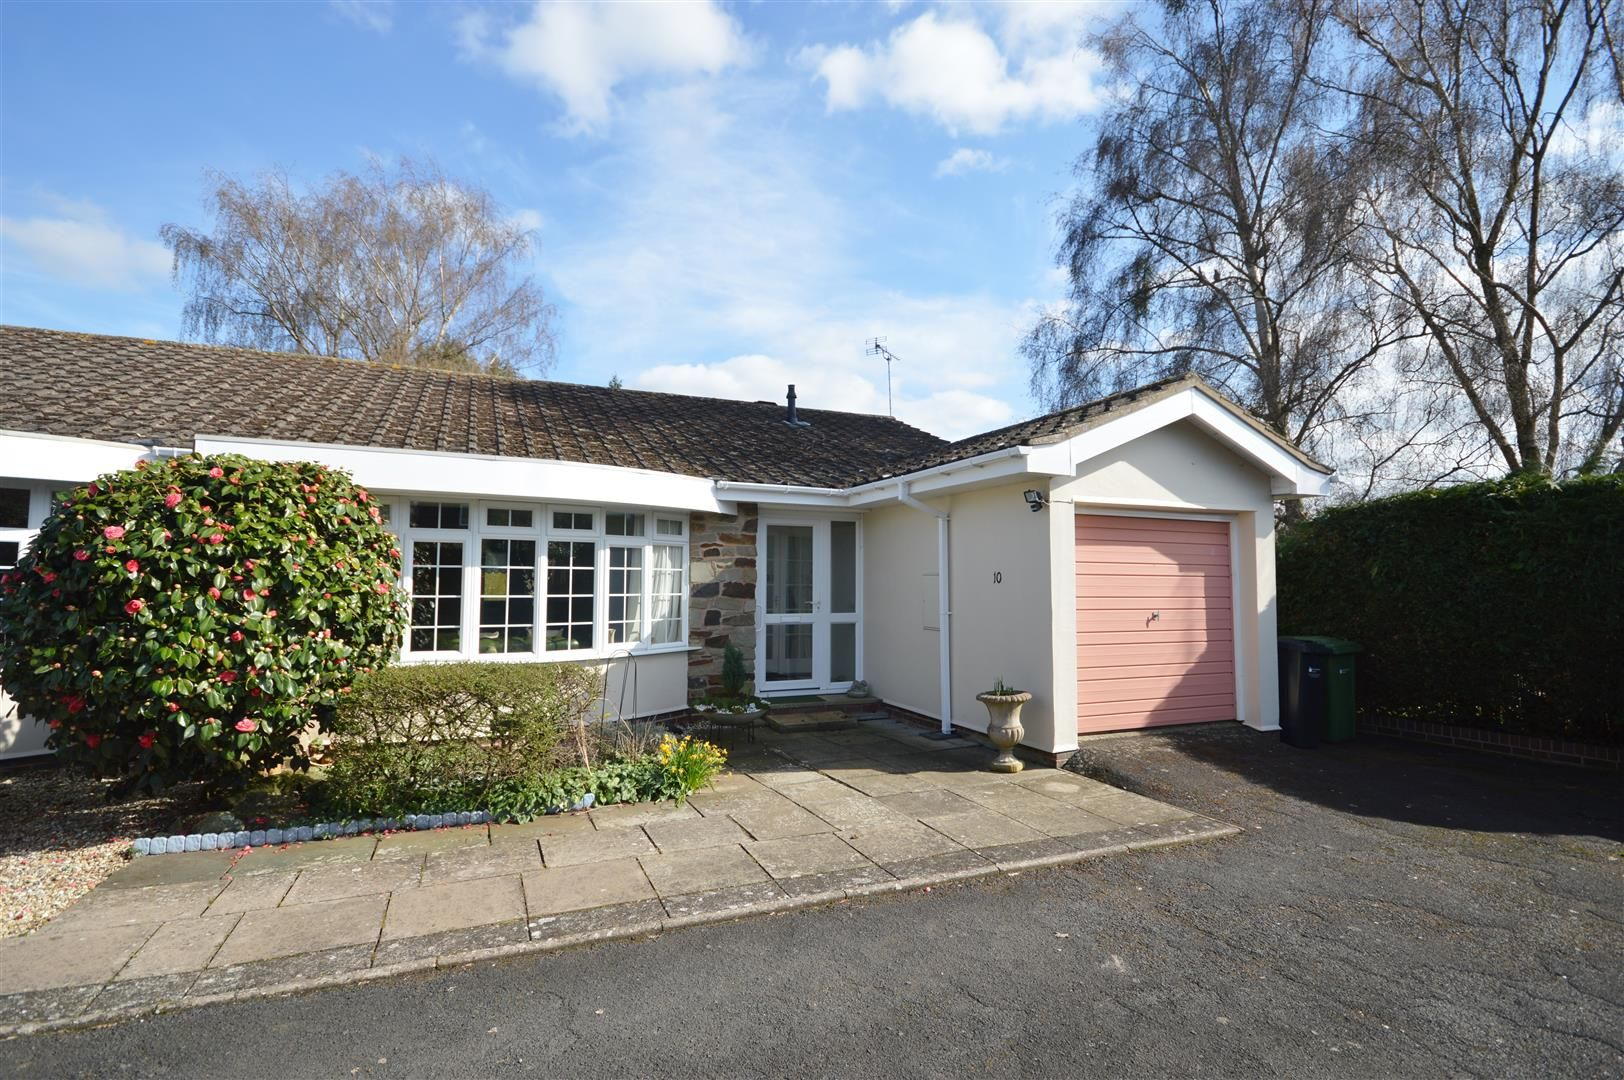 2 bed semi-detached bungalow for sale in Leominster - Property Image 1